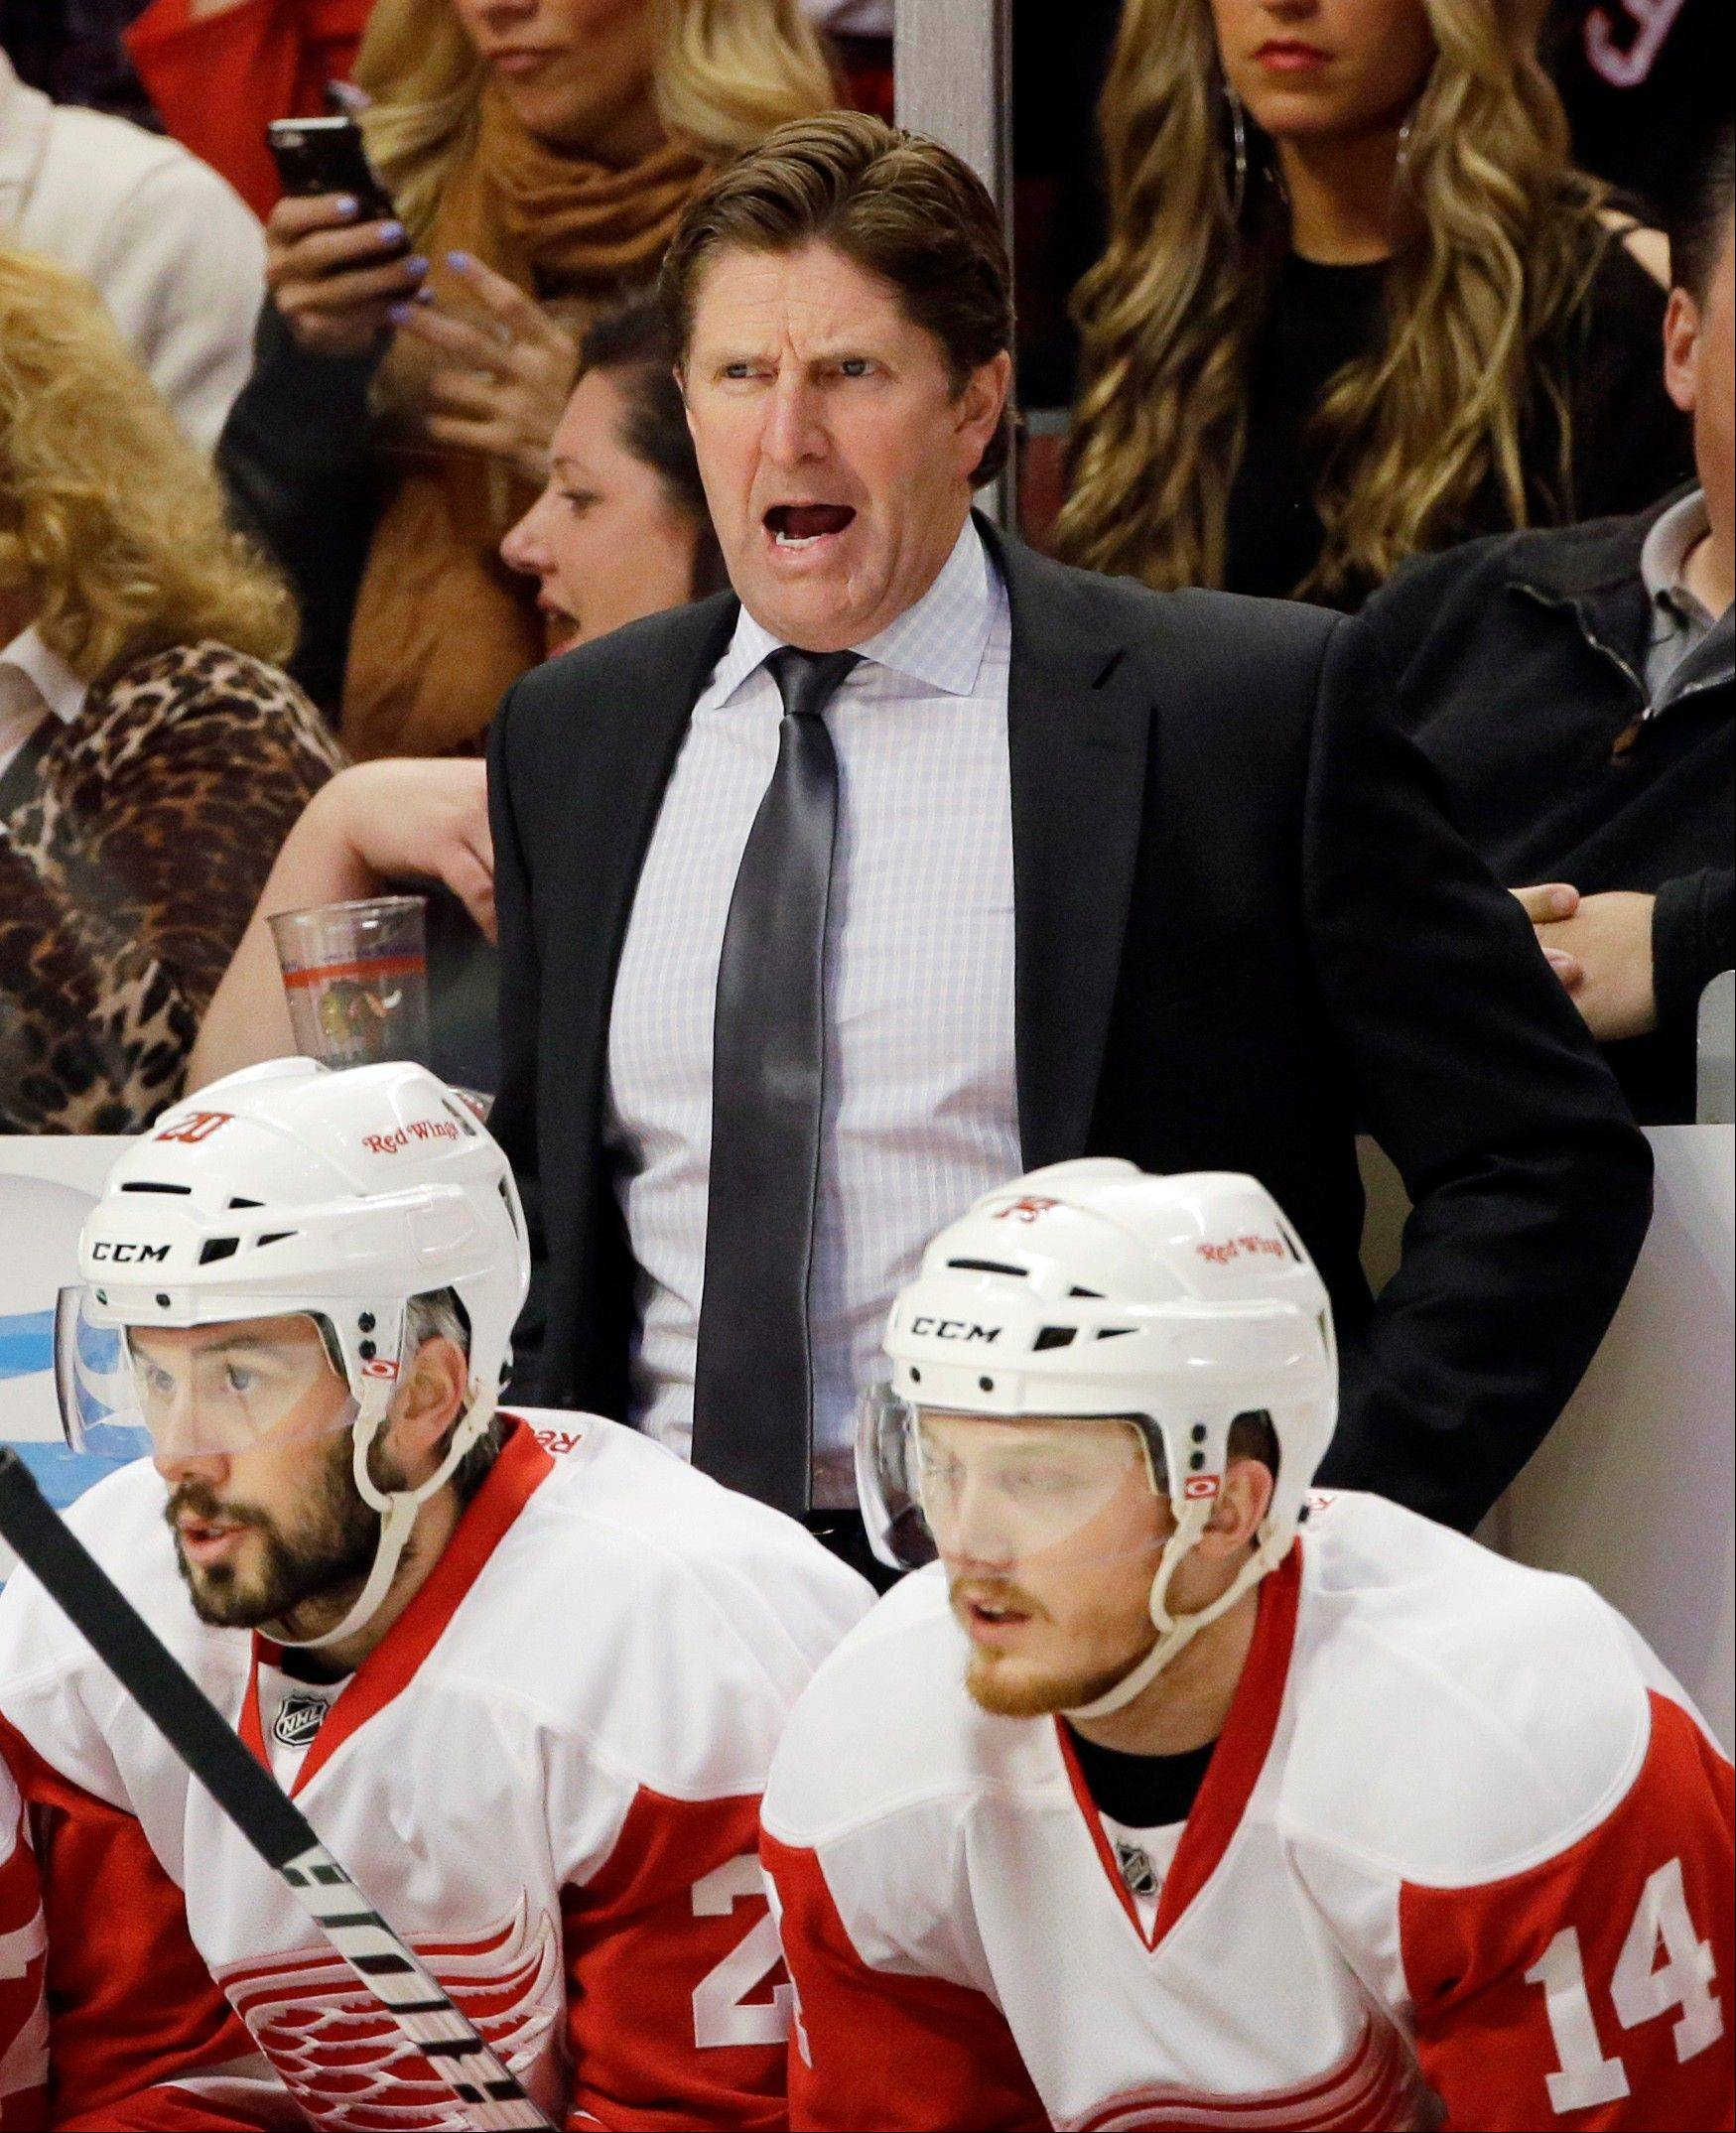 Detroit Red Wings head coach Mike Babcock, top, yells to his team during the first period of Game 5 of the NHL hockey Stanley Cup playoffs Western Conference semifinals against the Chicago Blackhawks in Chicago, Saturday, May 25, 2013.